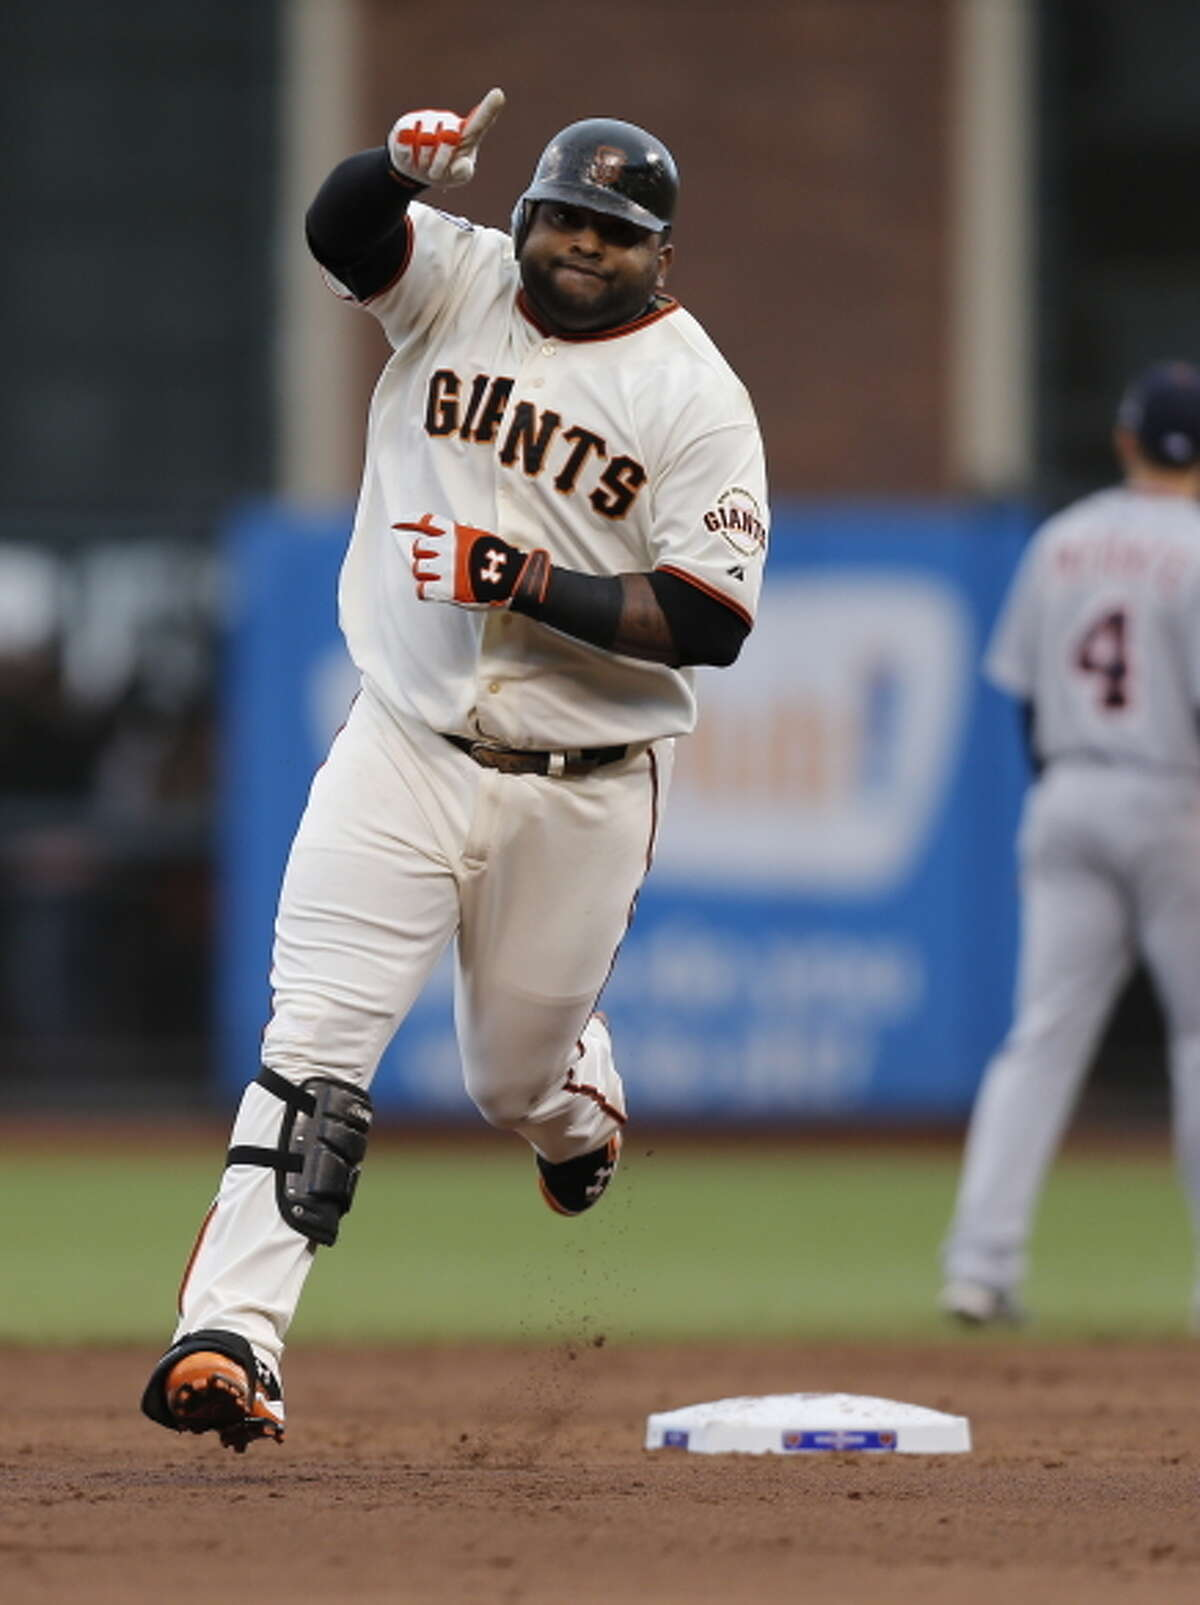 Giants' 3rd baseman Pablo Sandoval gestures as he rounds the bases after hitting his 1st inning homerun in game 1 of the NLCS at AT&T Park on Sunday, Oct. 14, 2012 in San Francisco, Calif.